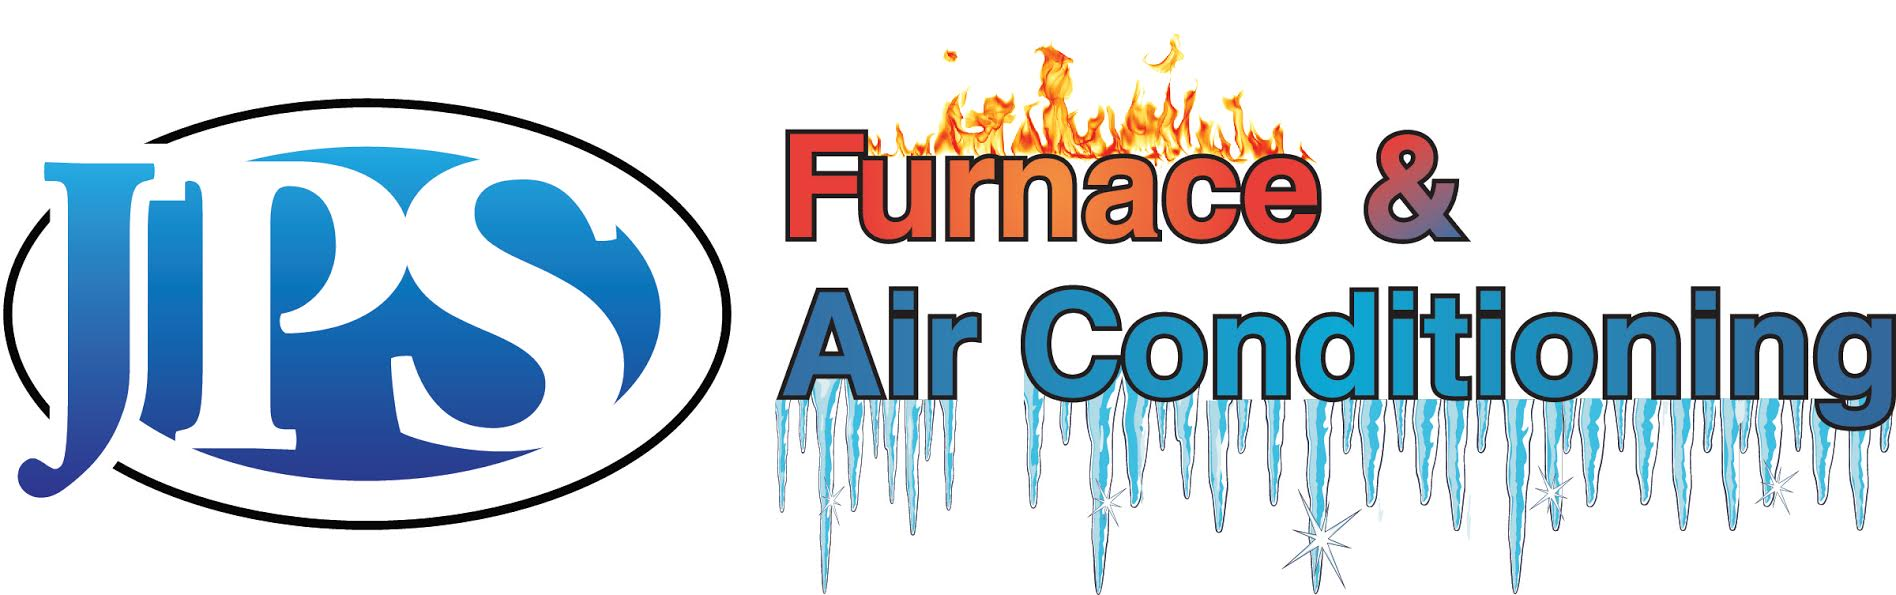 JPS Furnace & Air Conditioning